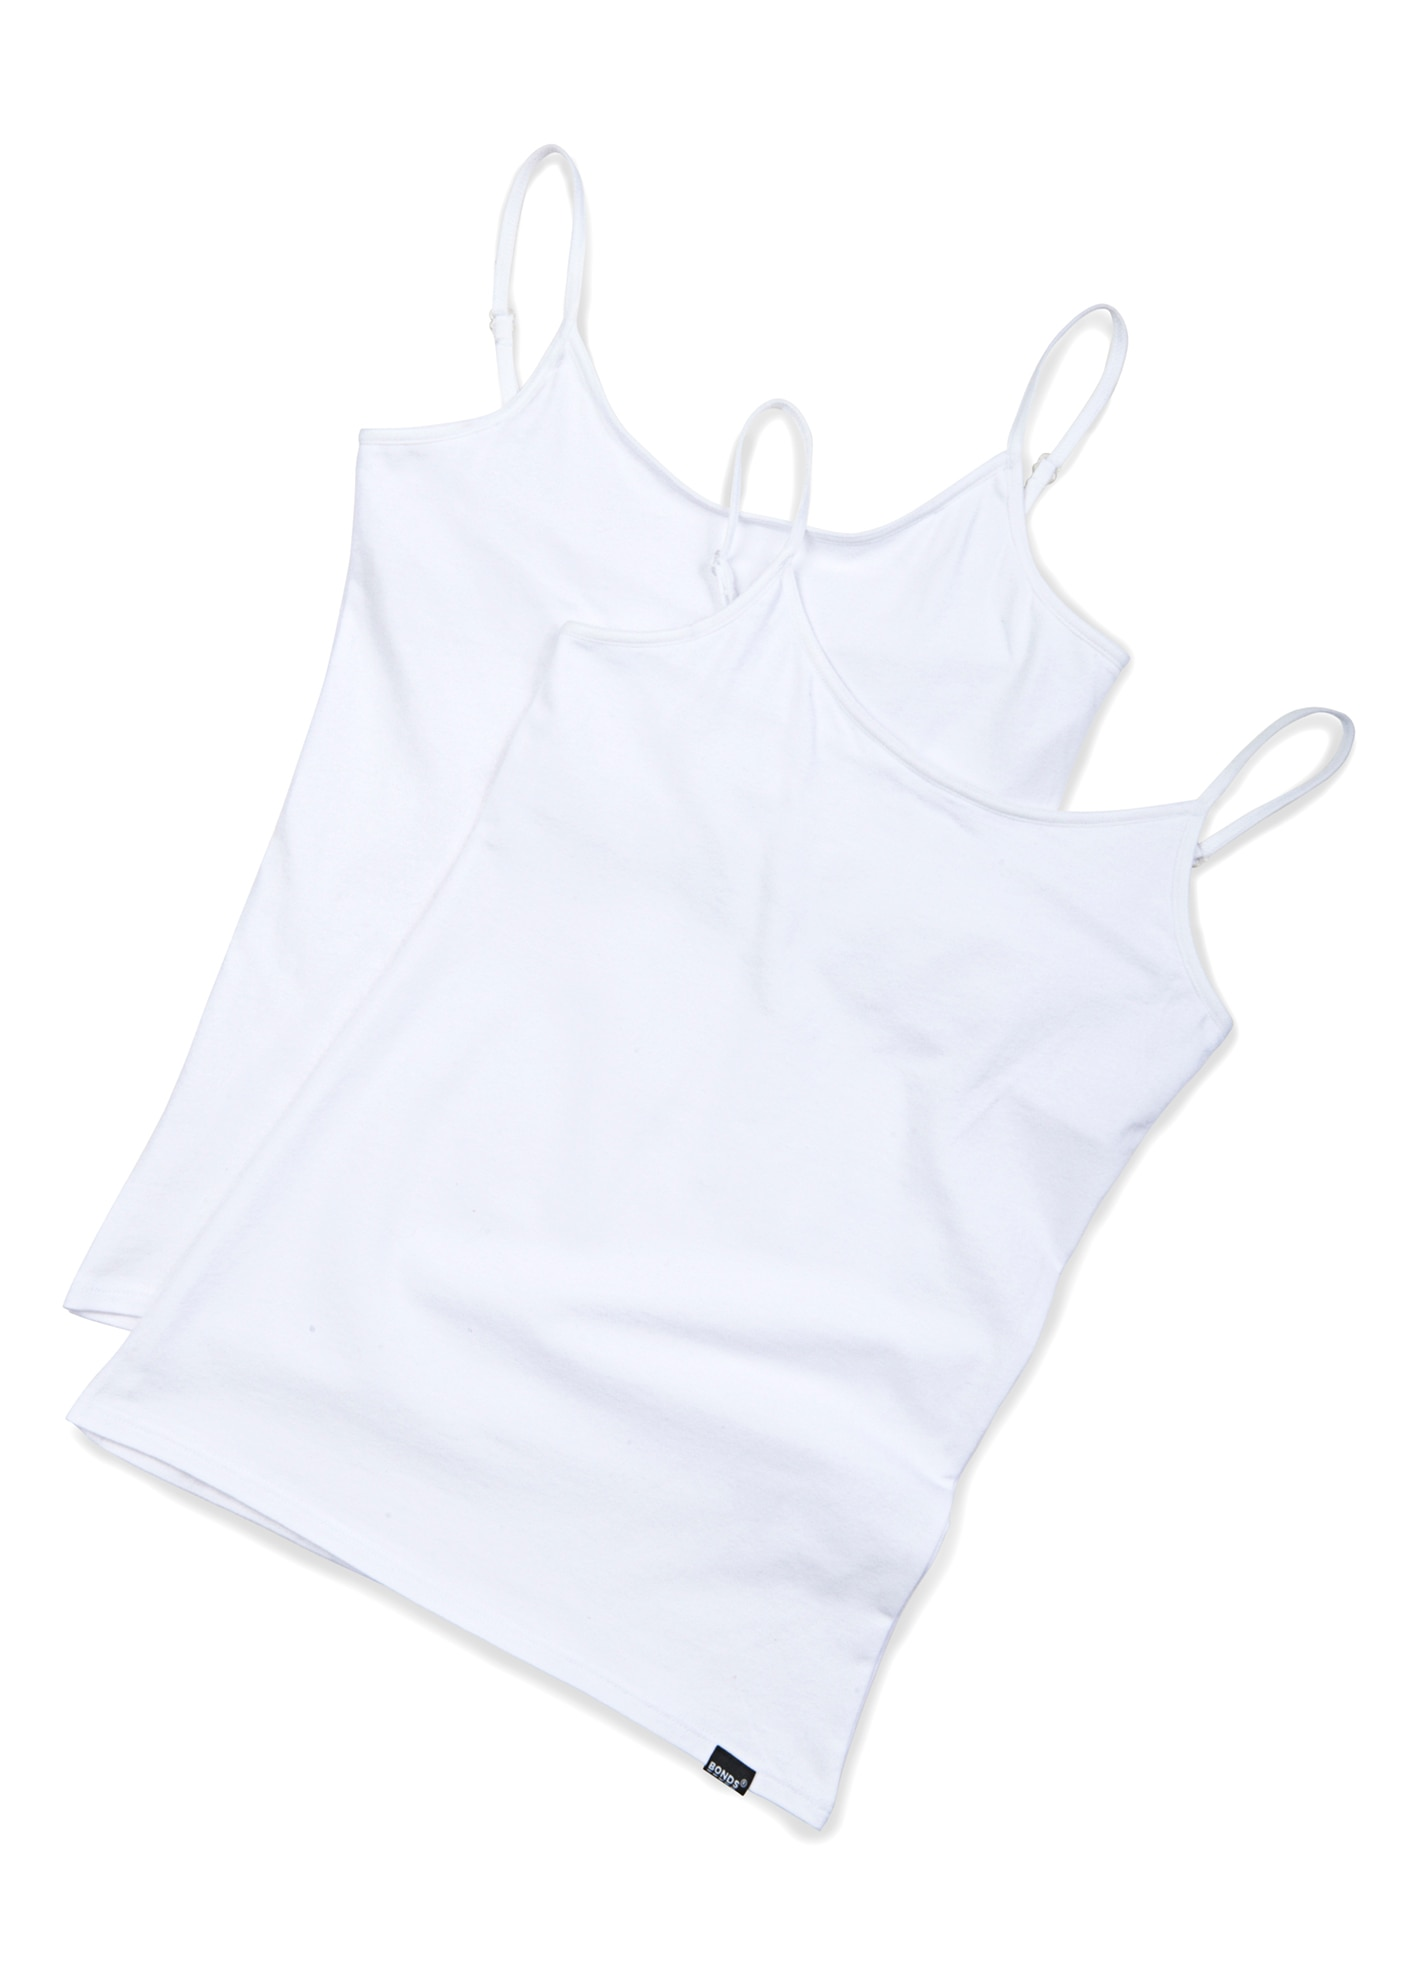 Bonds Hipster Hidden Crop Singlet 6pk - White / 12